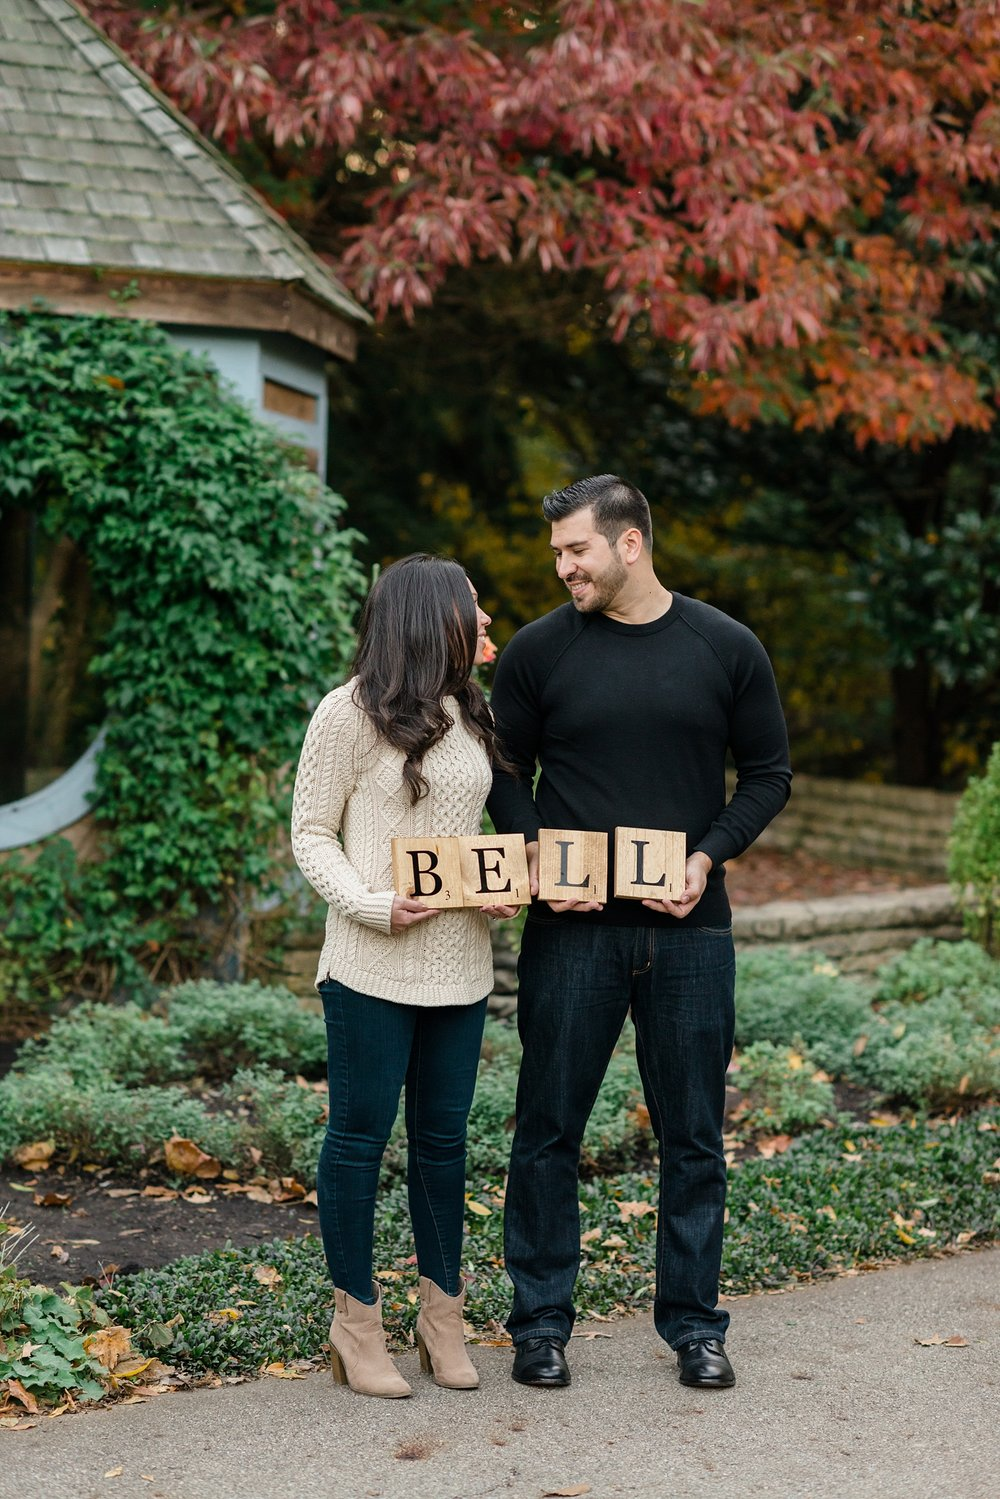 Dayton Engagement Session Photographer | AndreaBelleStudios.com